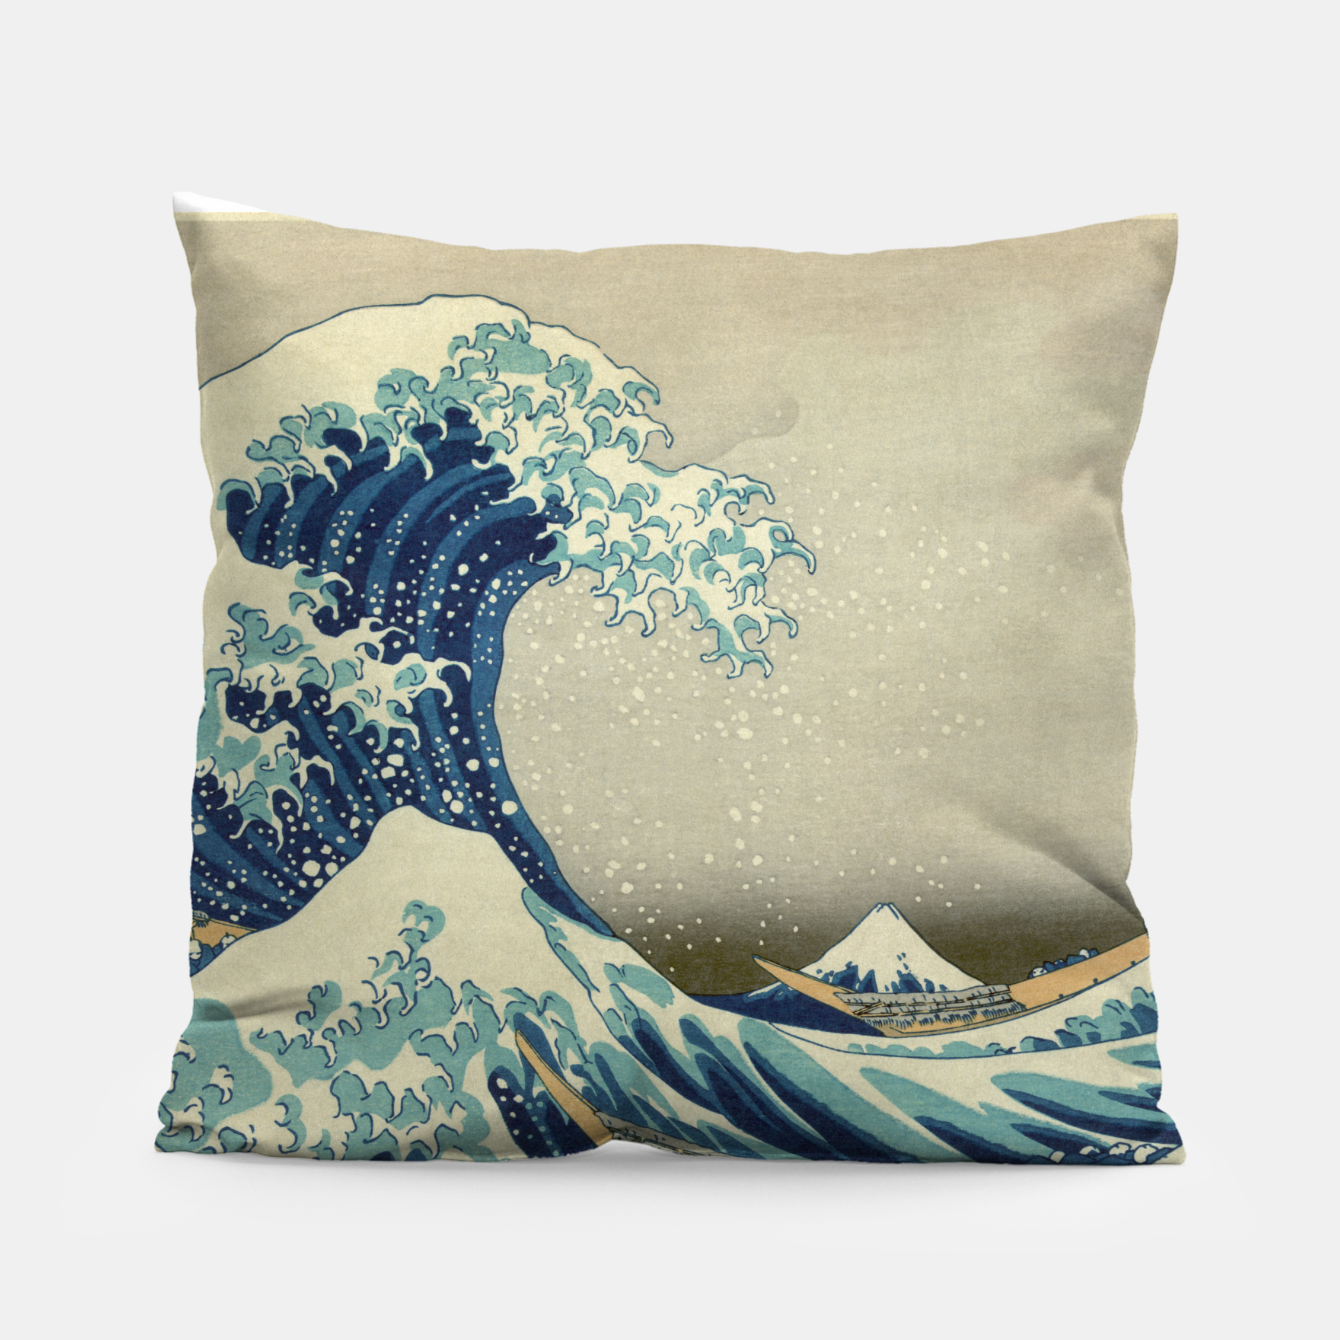 66c453015112a Image of The Classic Japanese Great Wave off Kanagawa by Hokusai Pillow -  Live Heroes